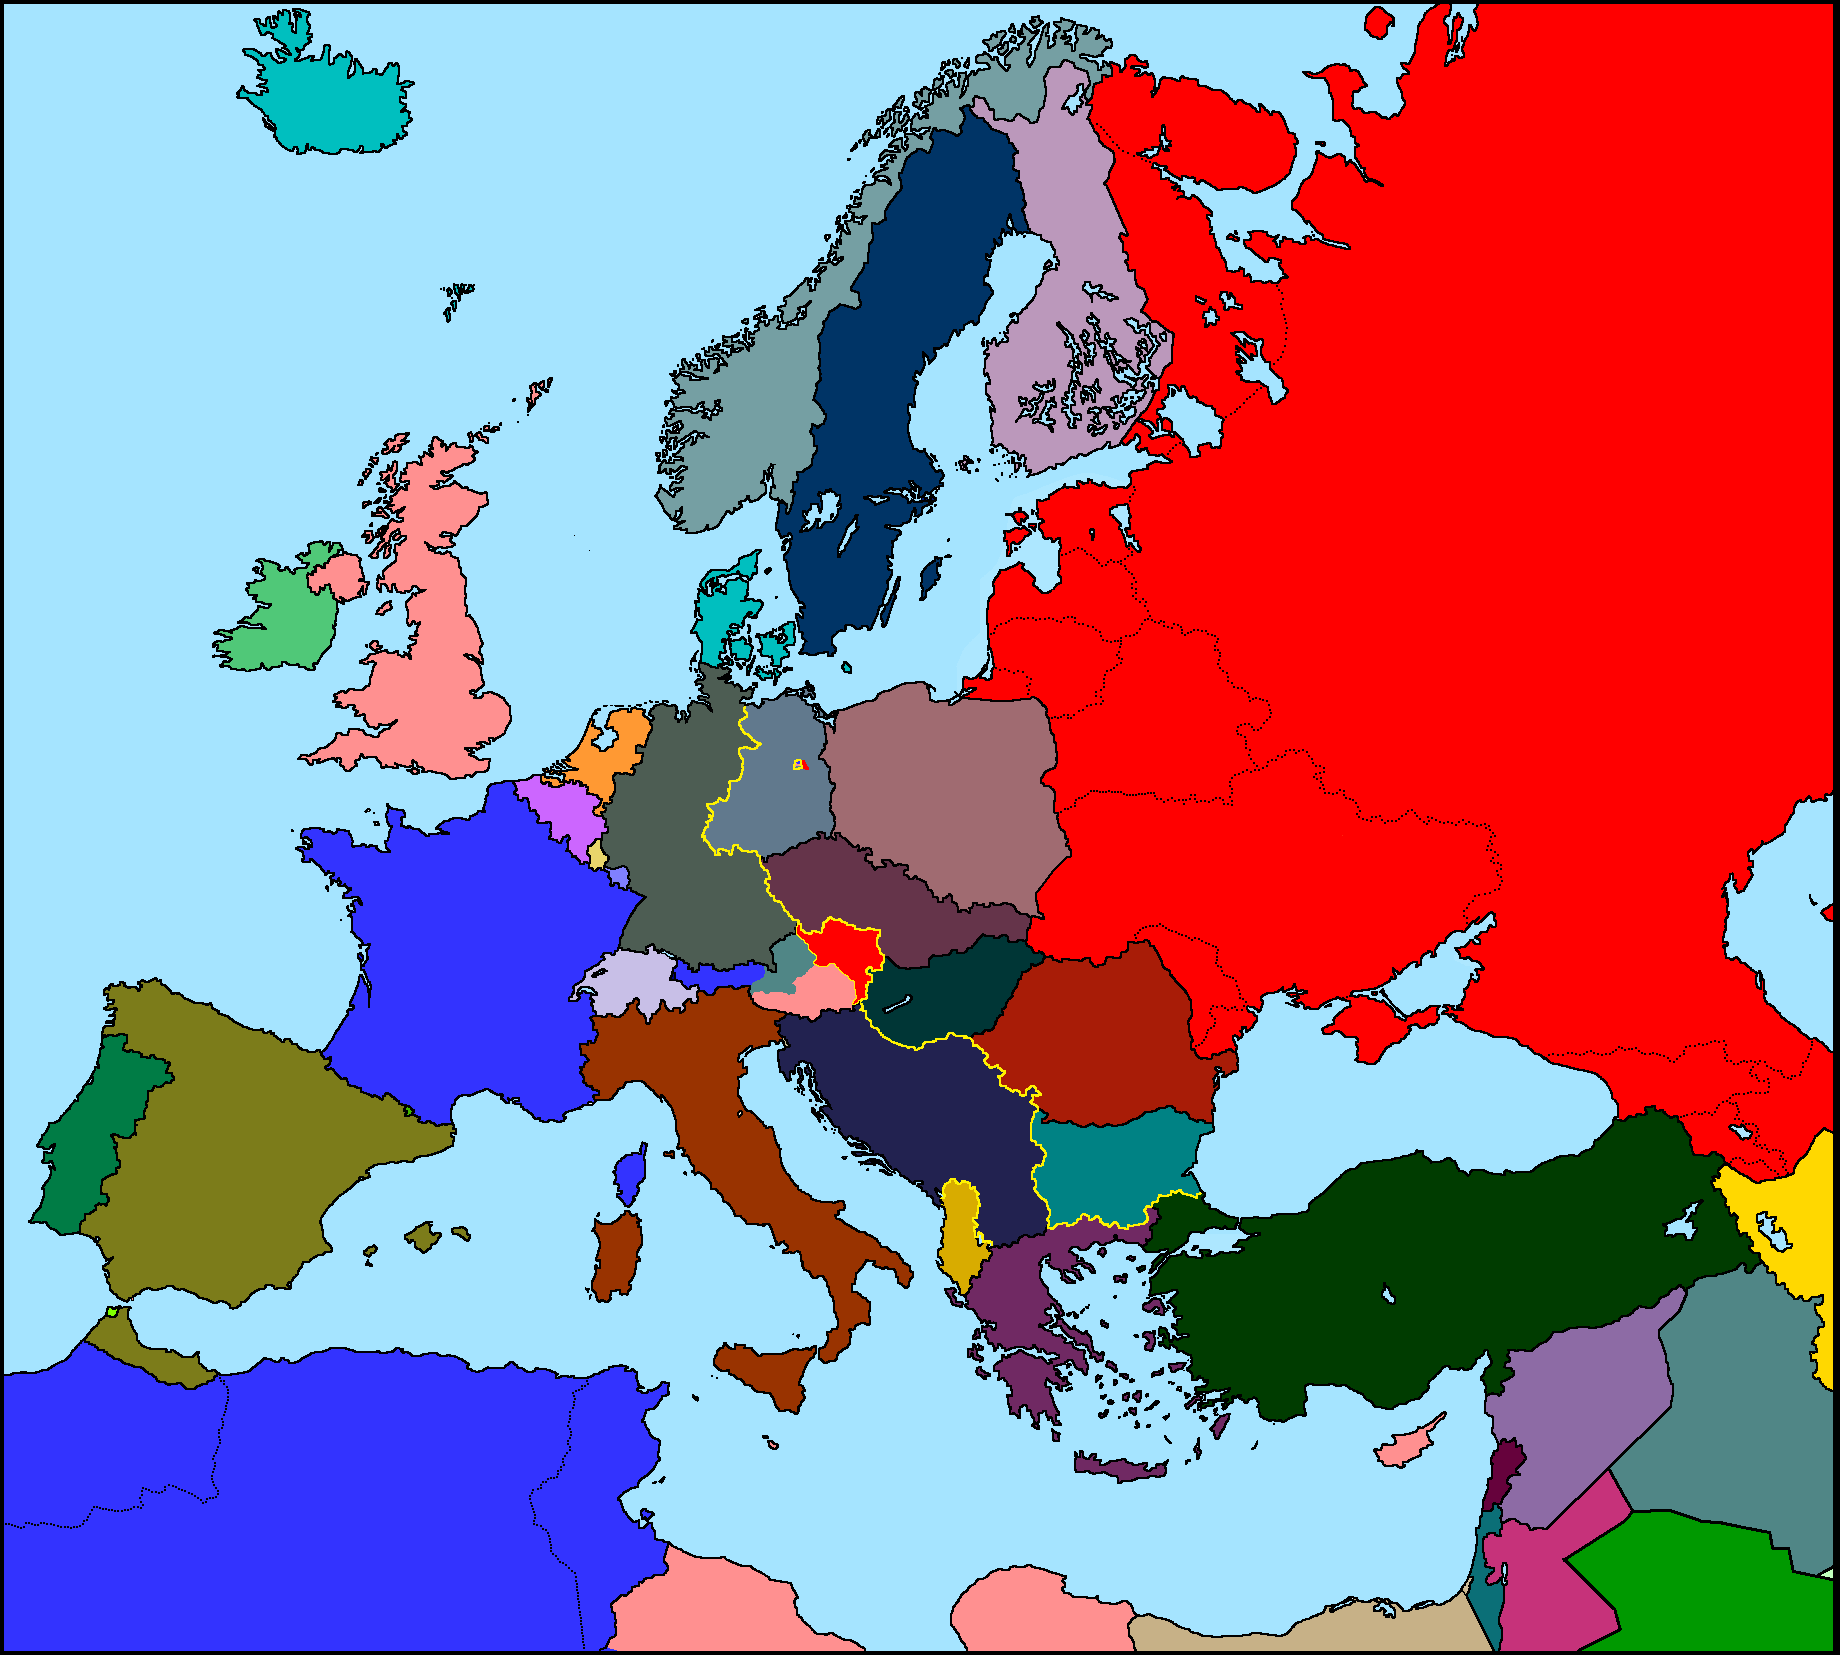 Map Of Europe 1950 Map of Europe 1950 v3 by xGeograd on DeviantArt